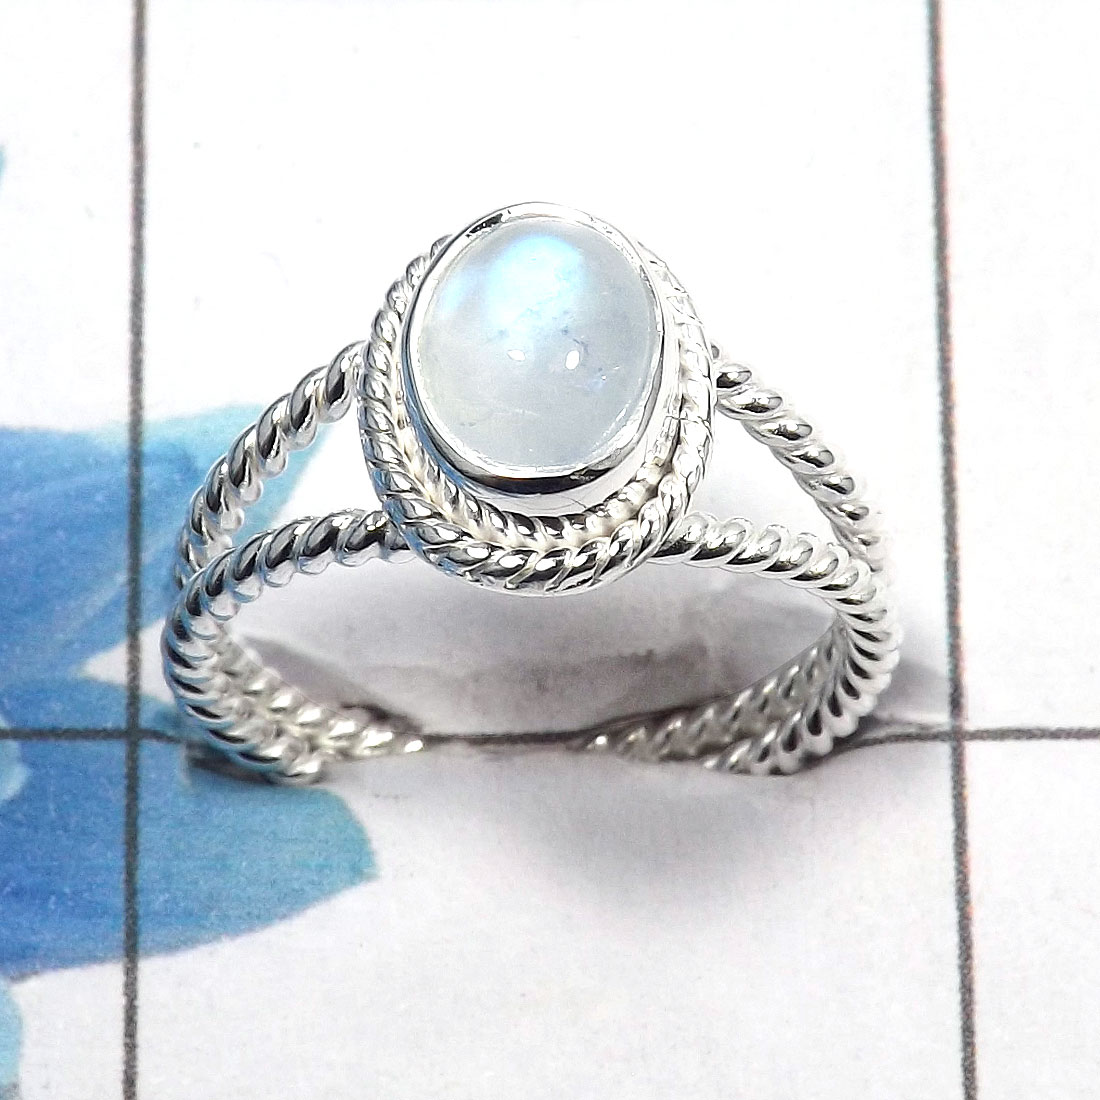 Rainbow Moonstone Cab A - SDR460 - Natural Rainbow Moonstone Gemstone Designer Ring 925 Sterling Silver